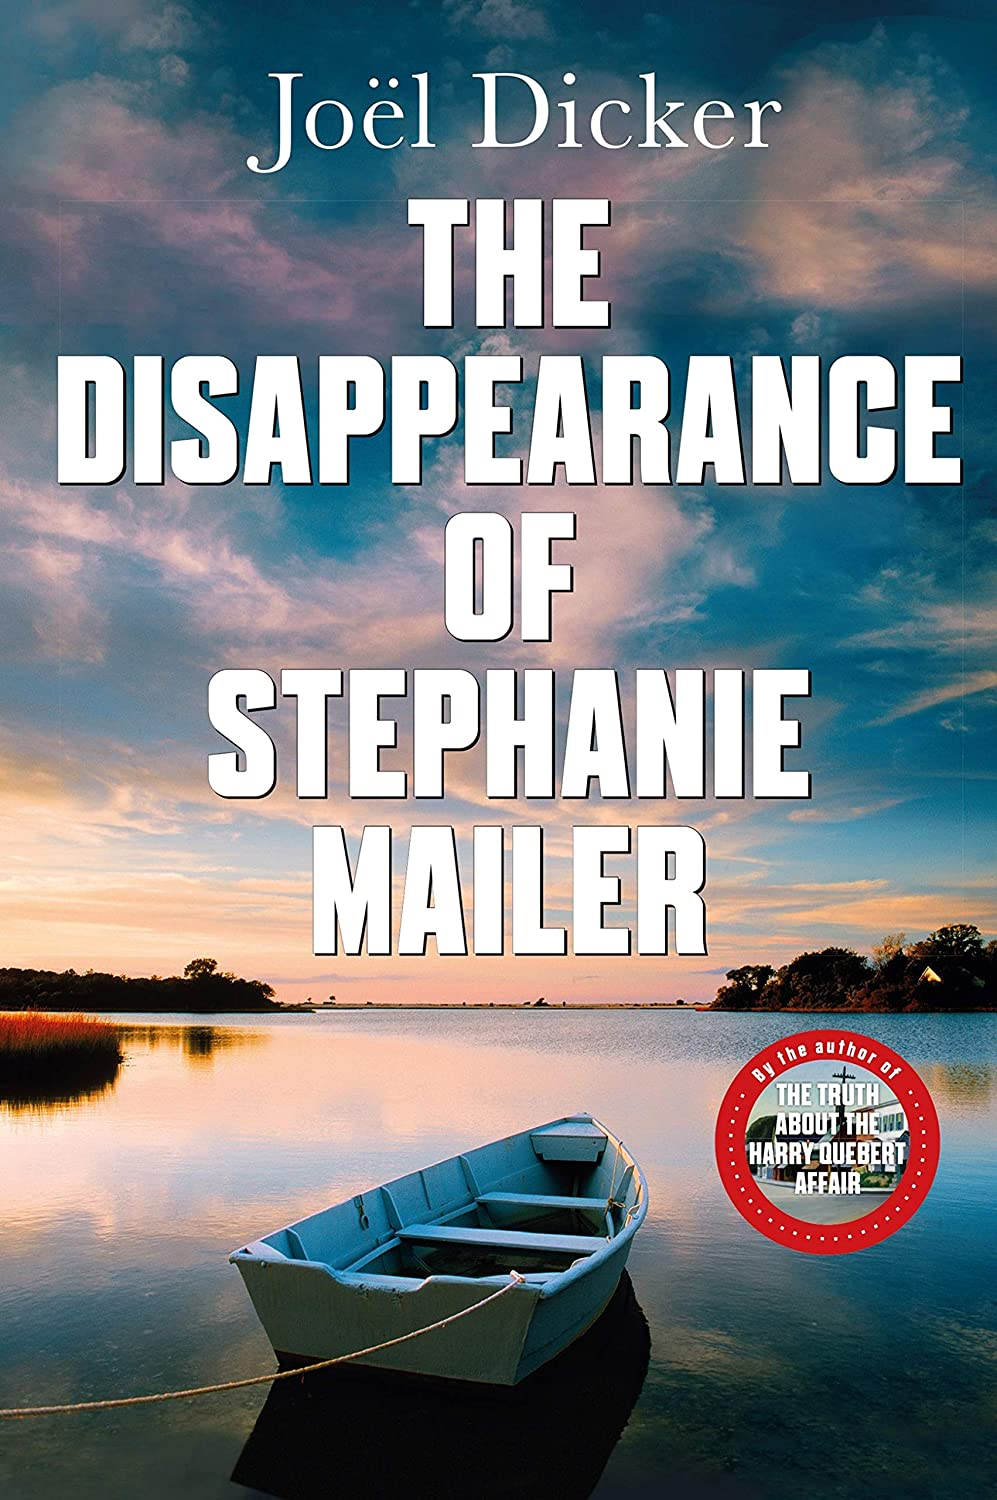 The Disappearance of Stephanie Mailer: A gripping new thriller ...